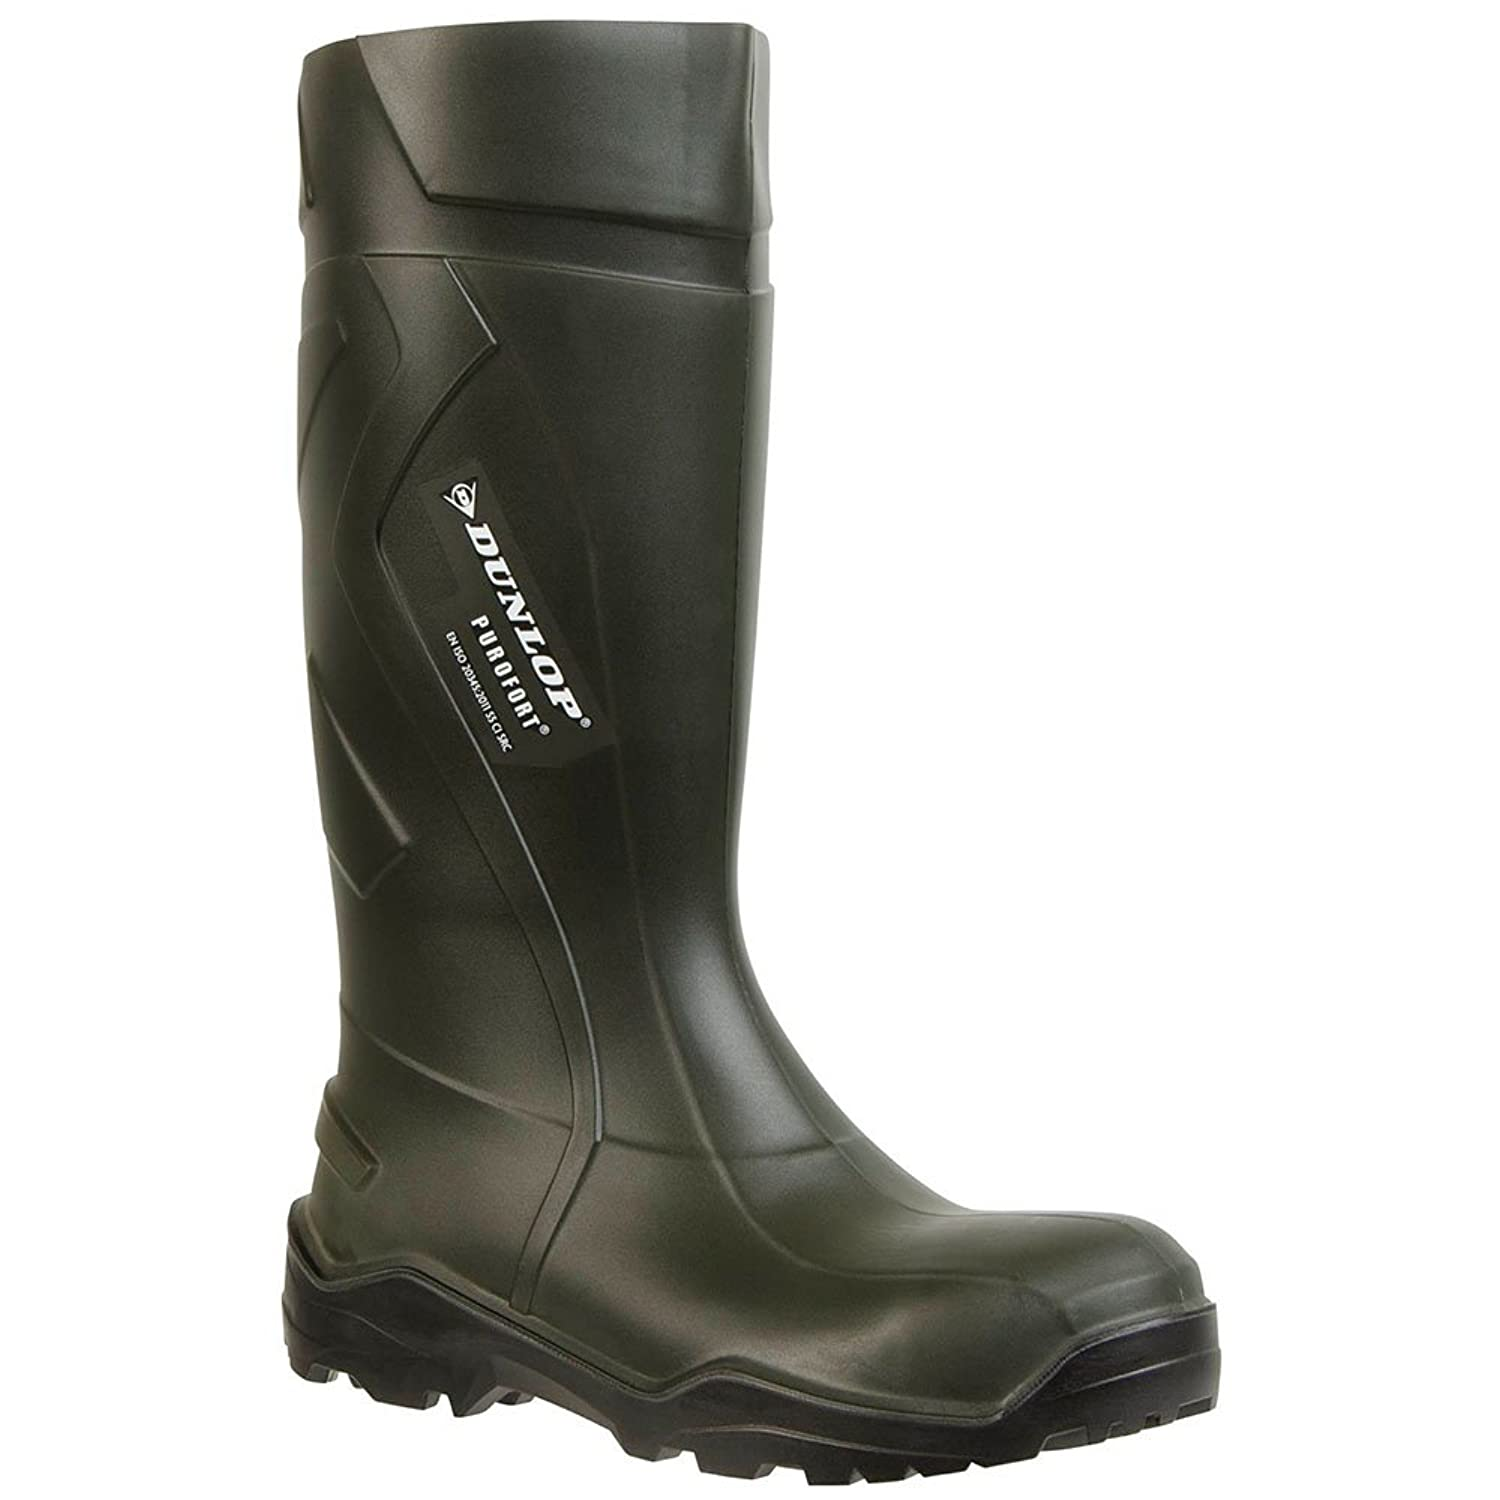 Dunlop Mens Purofort Thermo Insulated S5 SRC Full Safety Welly Boots